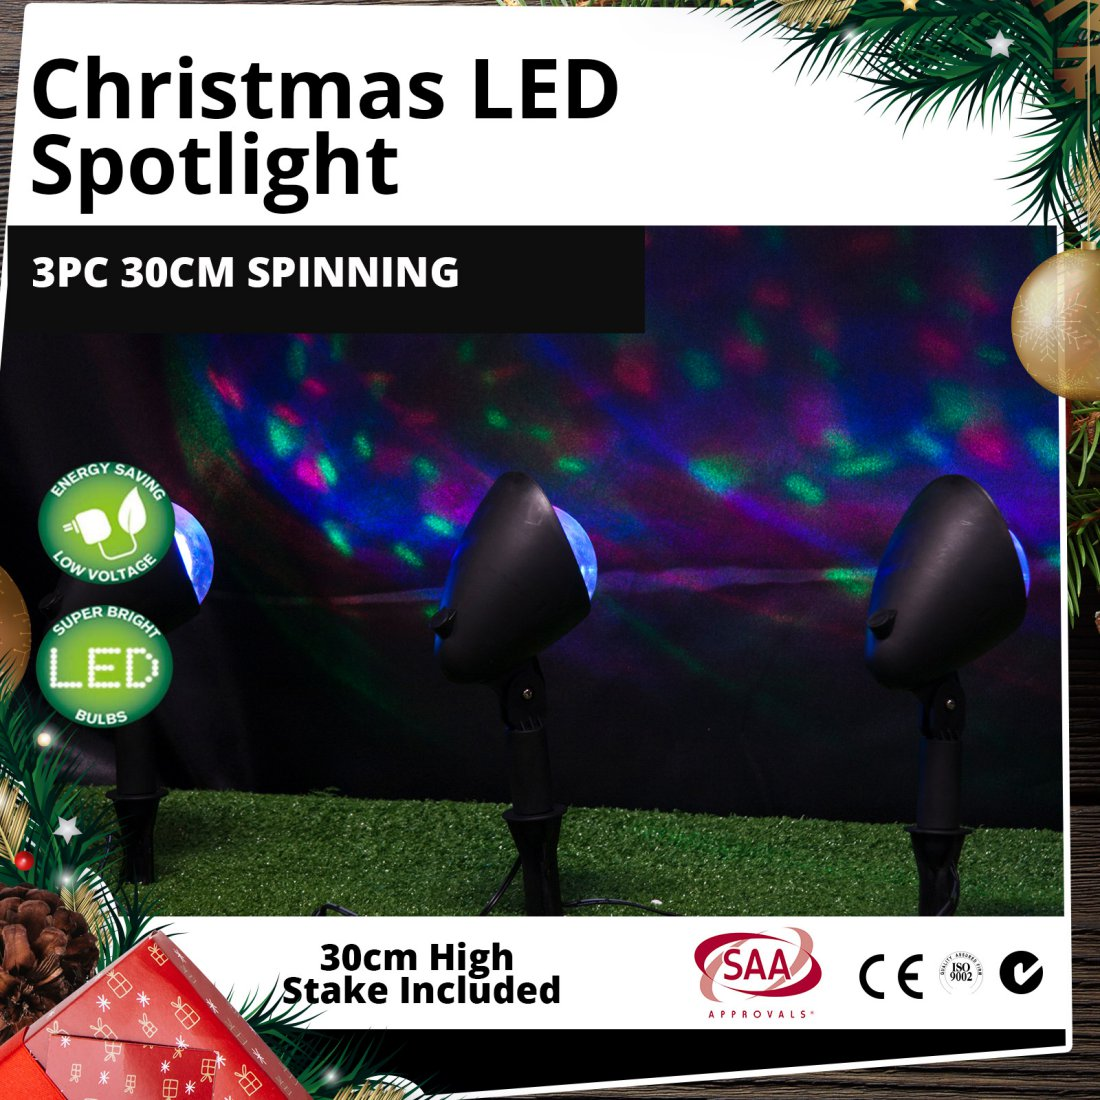 Outdoor LED 3pc Spotlights 30cm High Disco-Effect